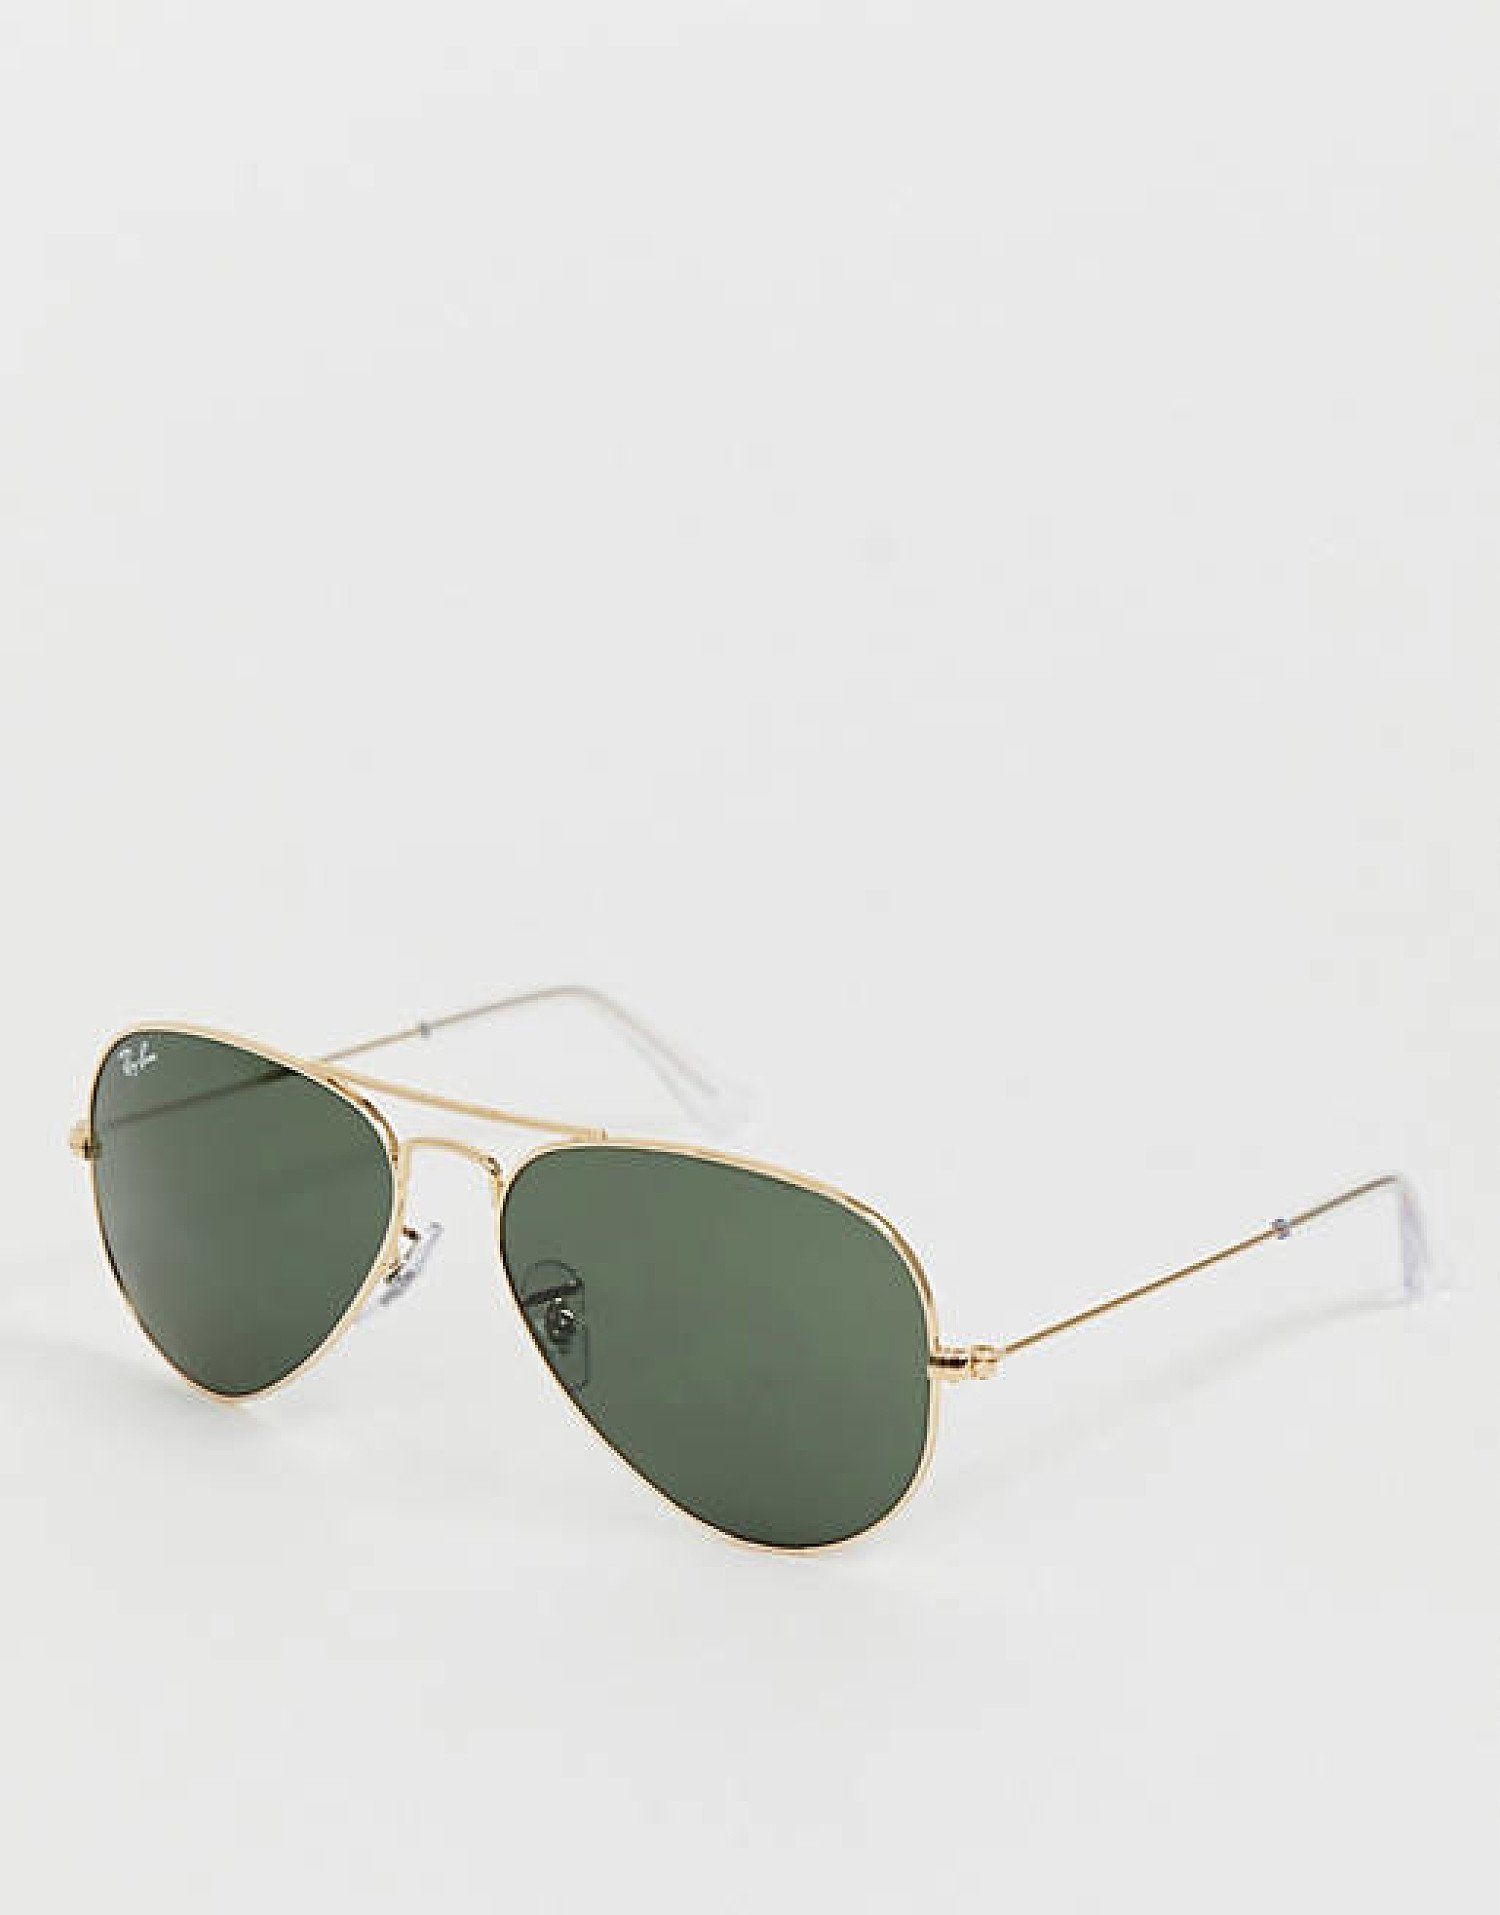 Ray-Ban Aviator sunglasses 0rb3025 current price - £137.00!